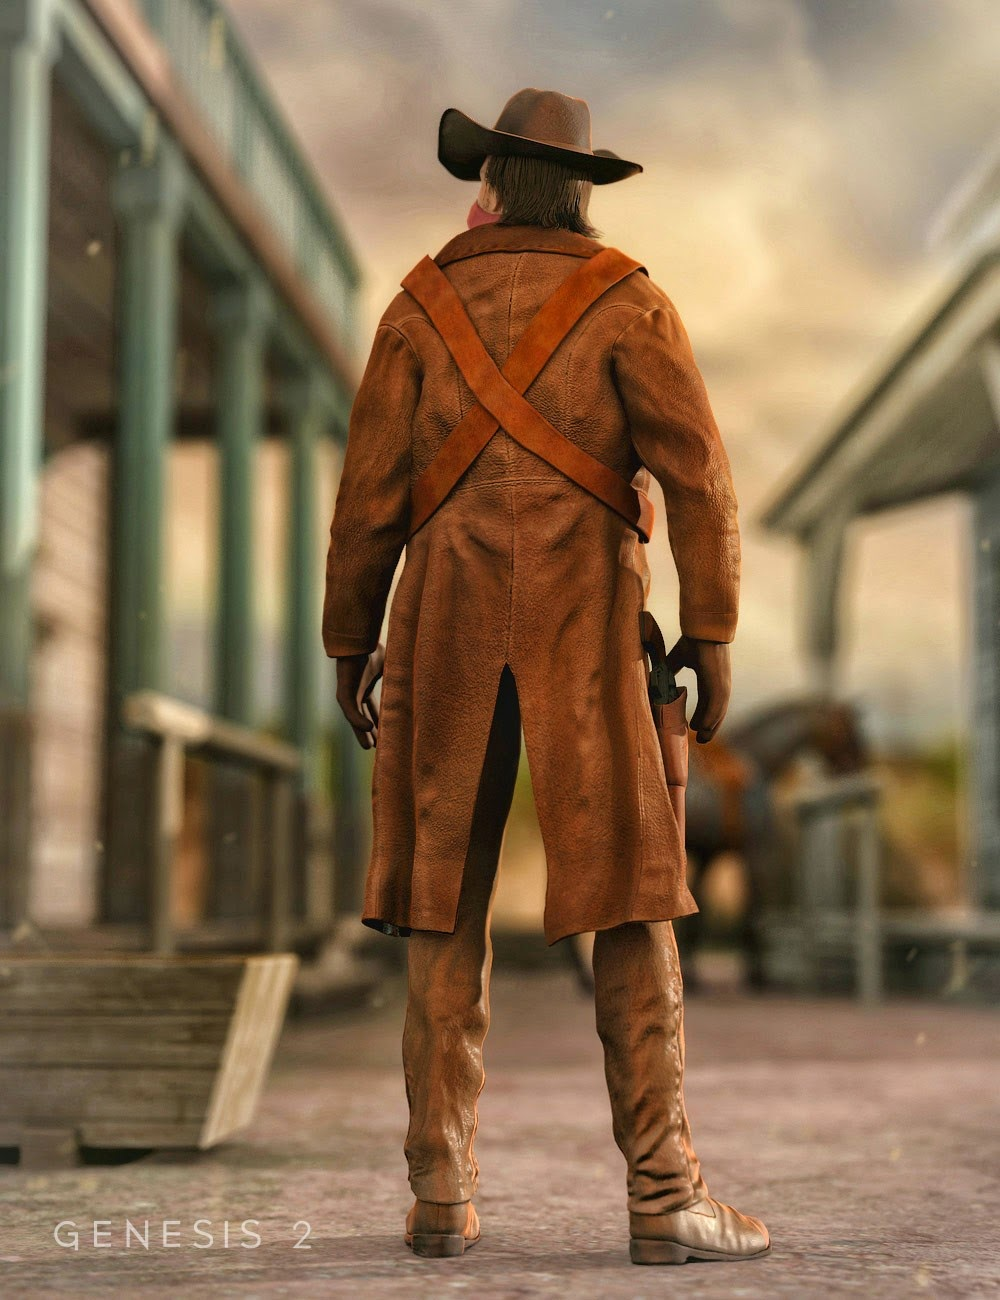 Western Outlaw pour Genesis 2 Homme